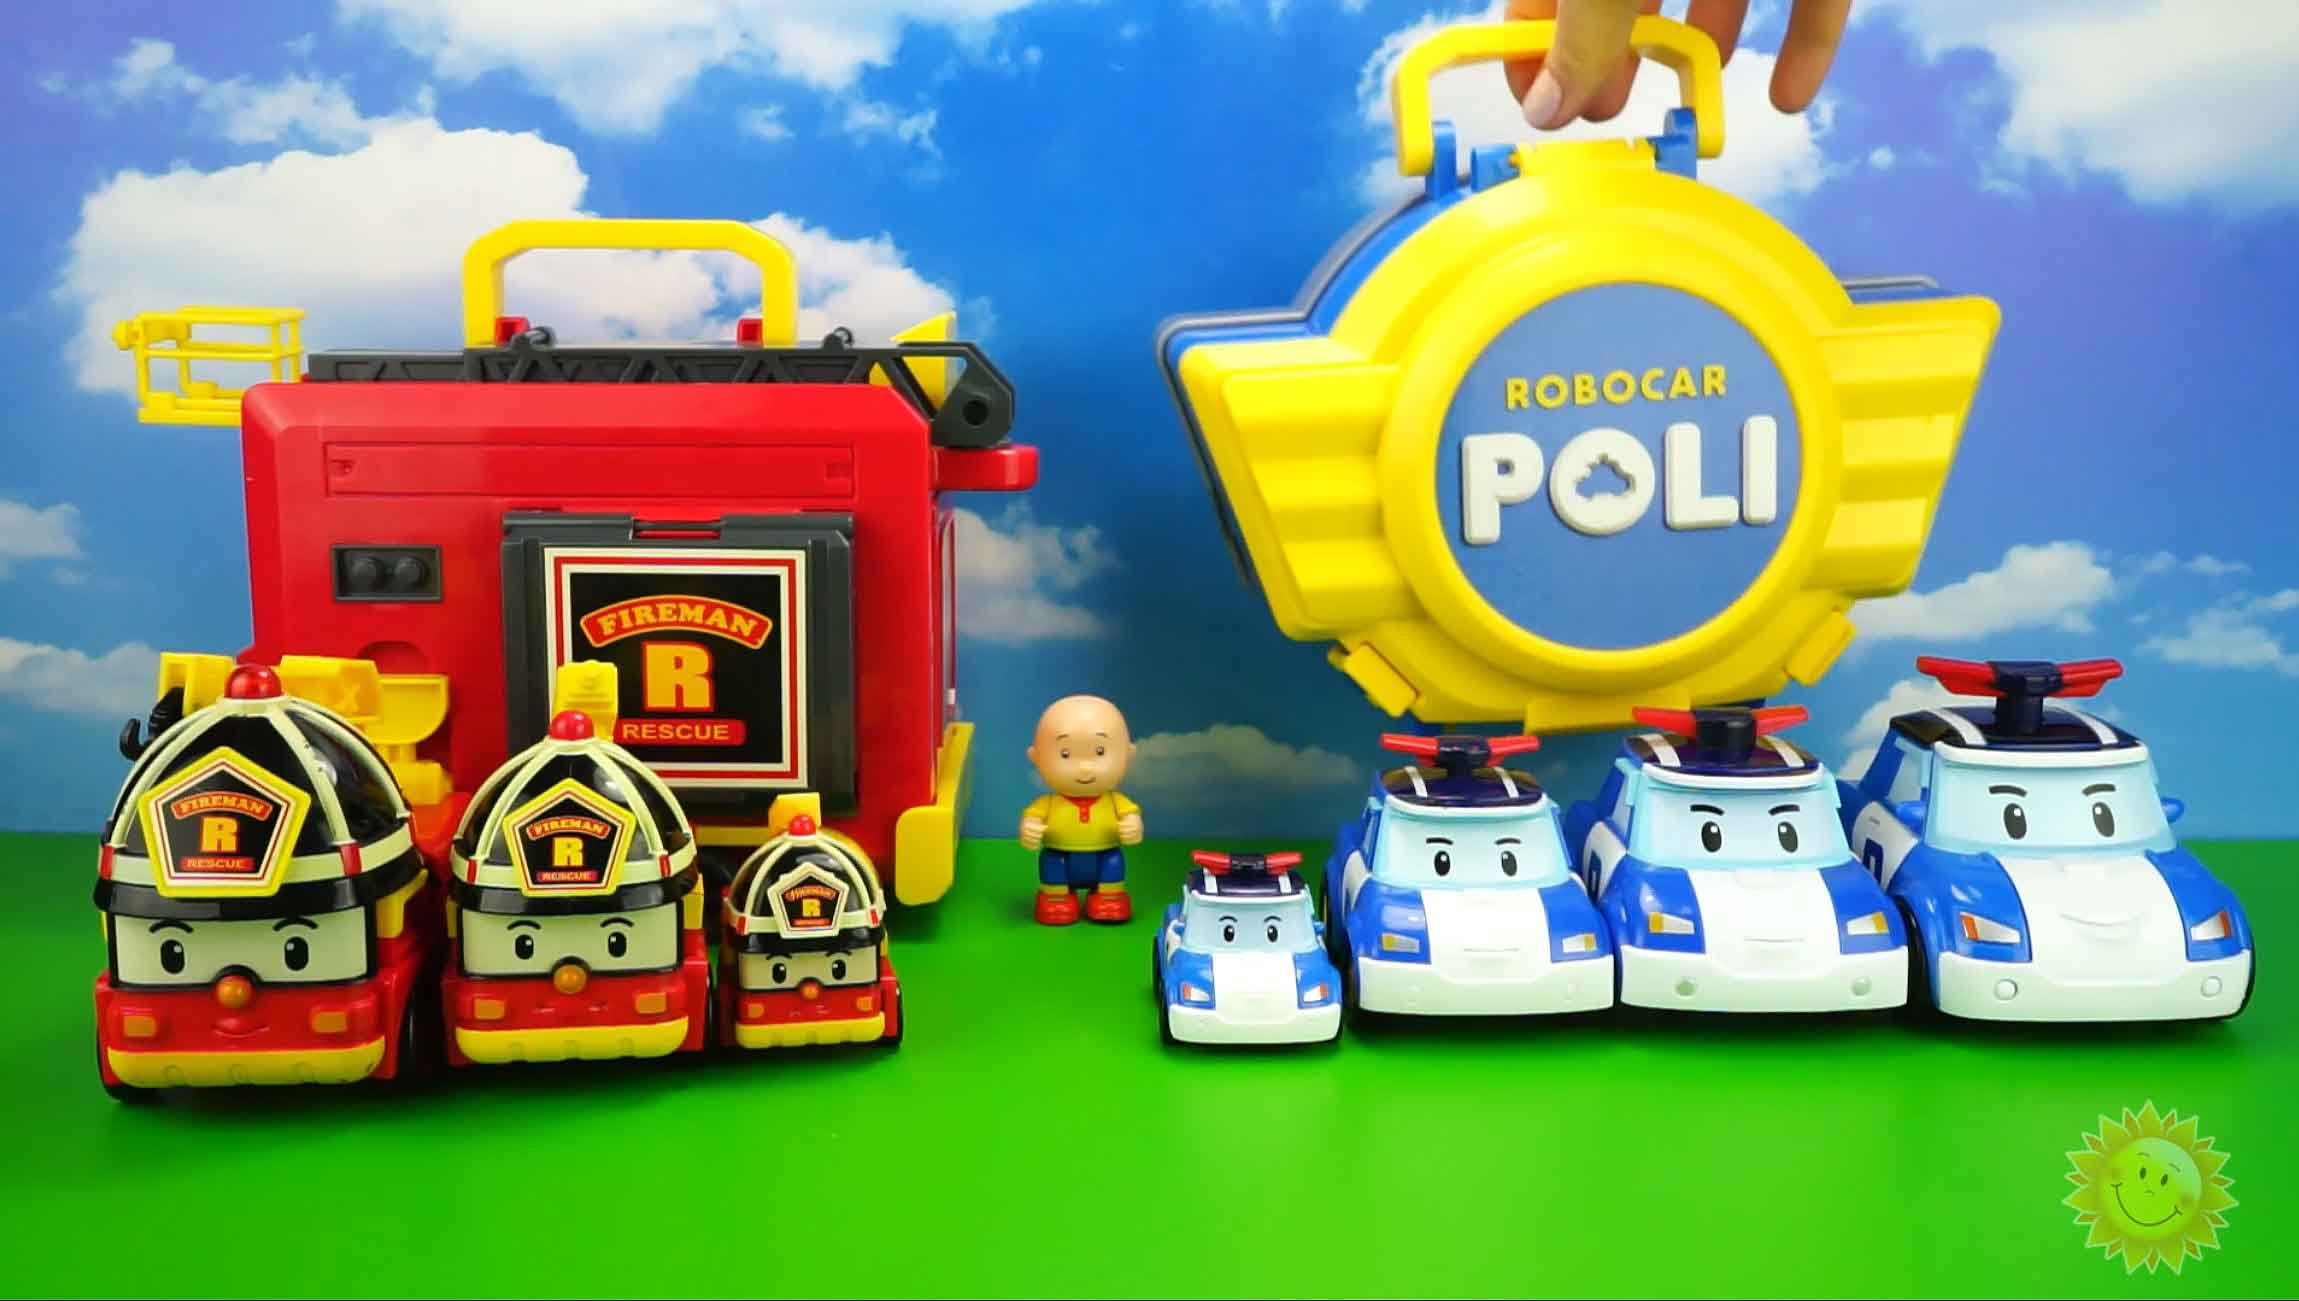 jeux video robocar poli